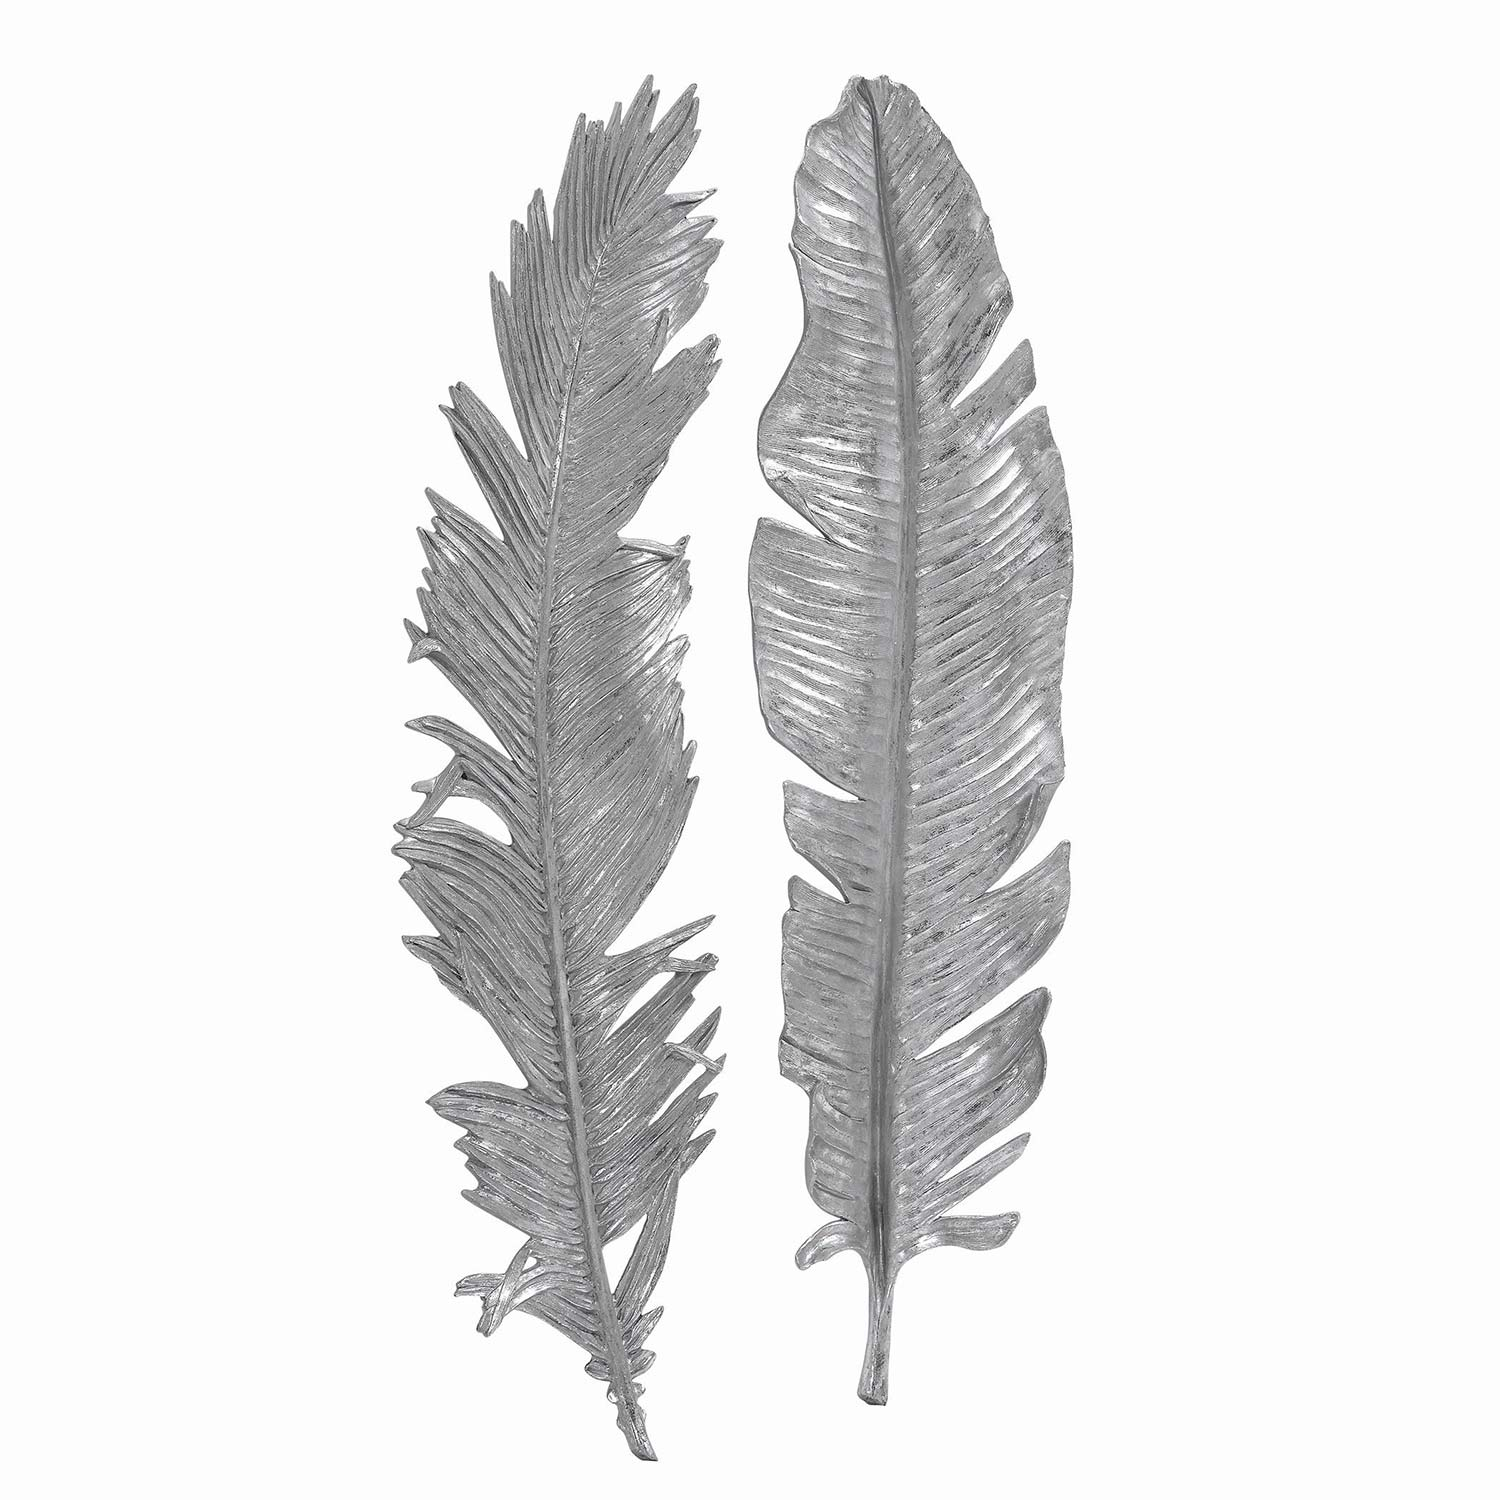 Uttermost Sparrow Silver Wall Decor - Set of 2